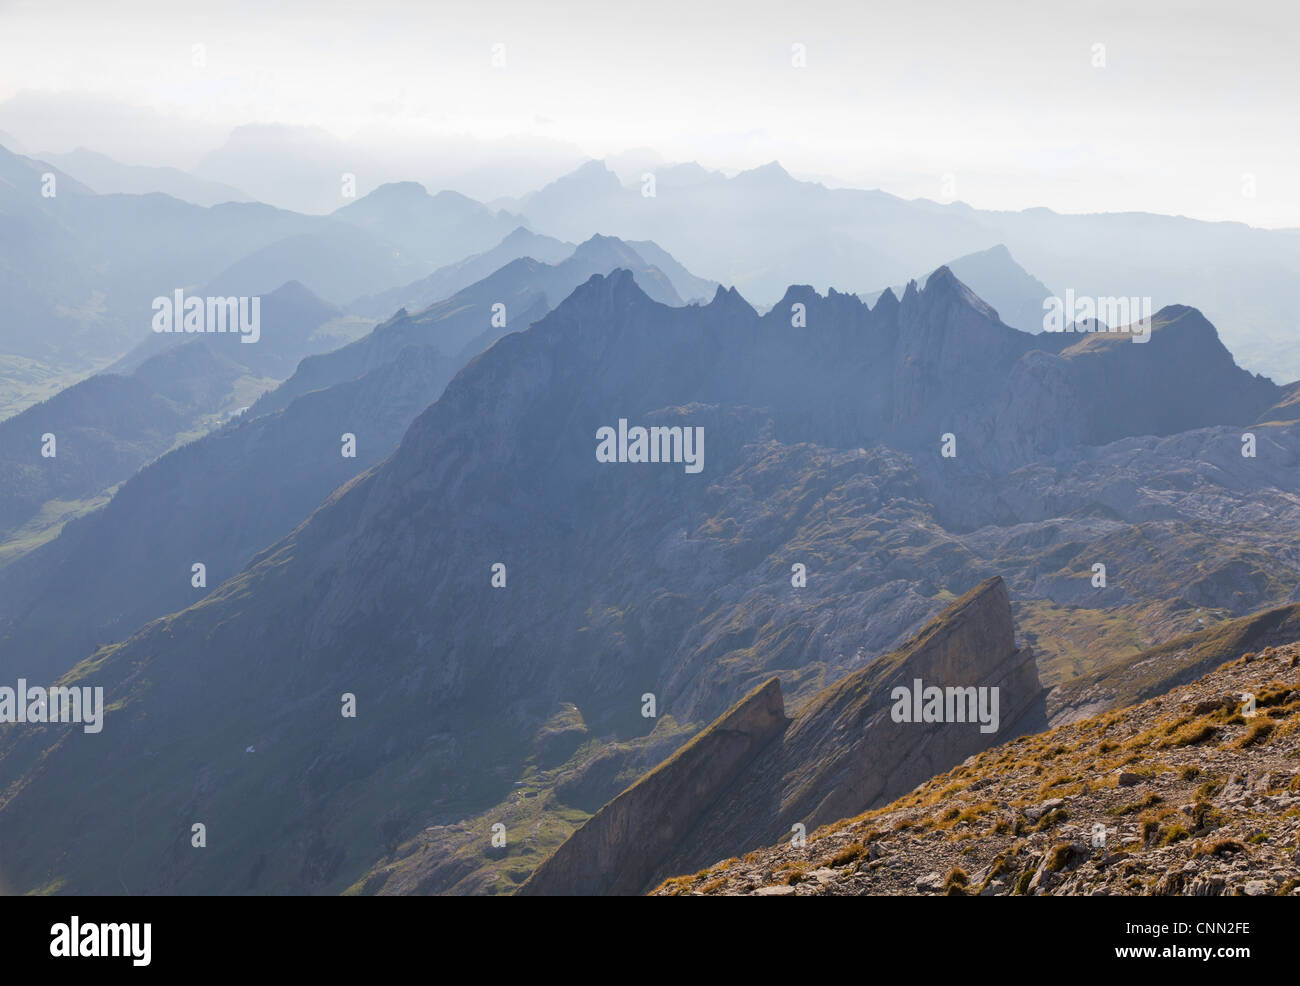 high alpine ragged sharp mountain top ranges disapear in misty distance, Switzerland - Stock Image